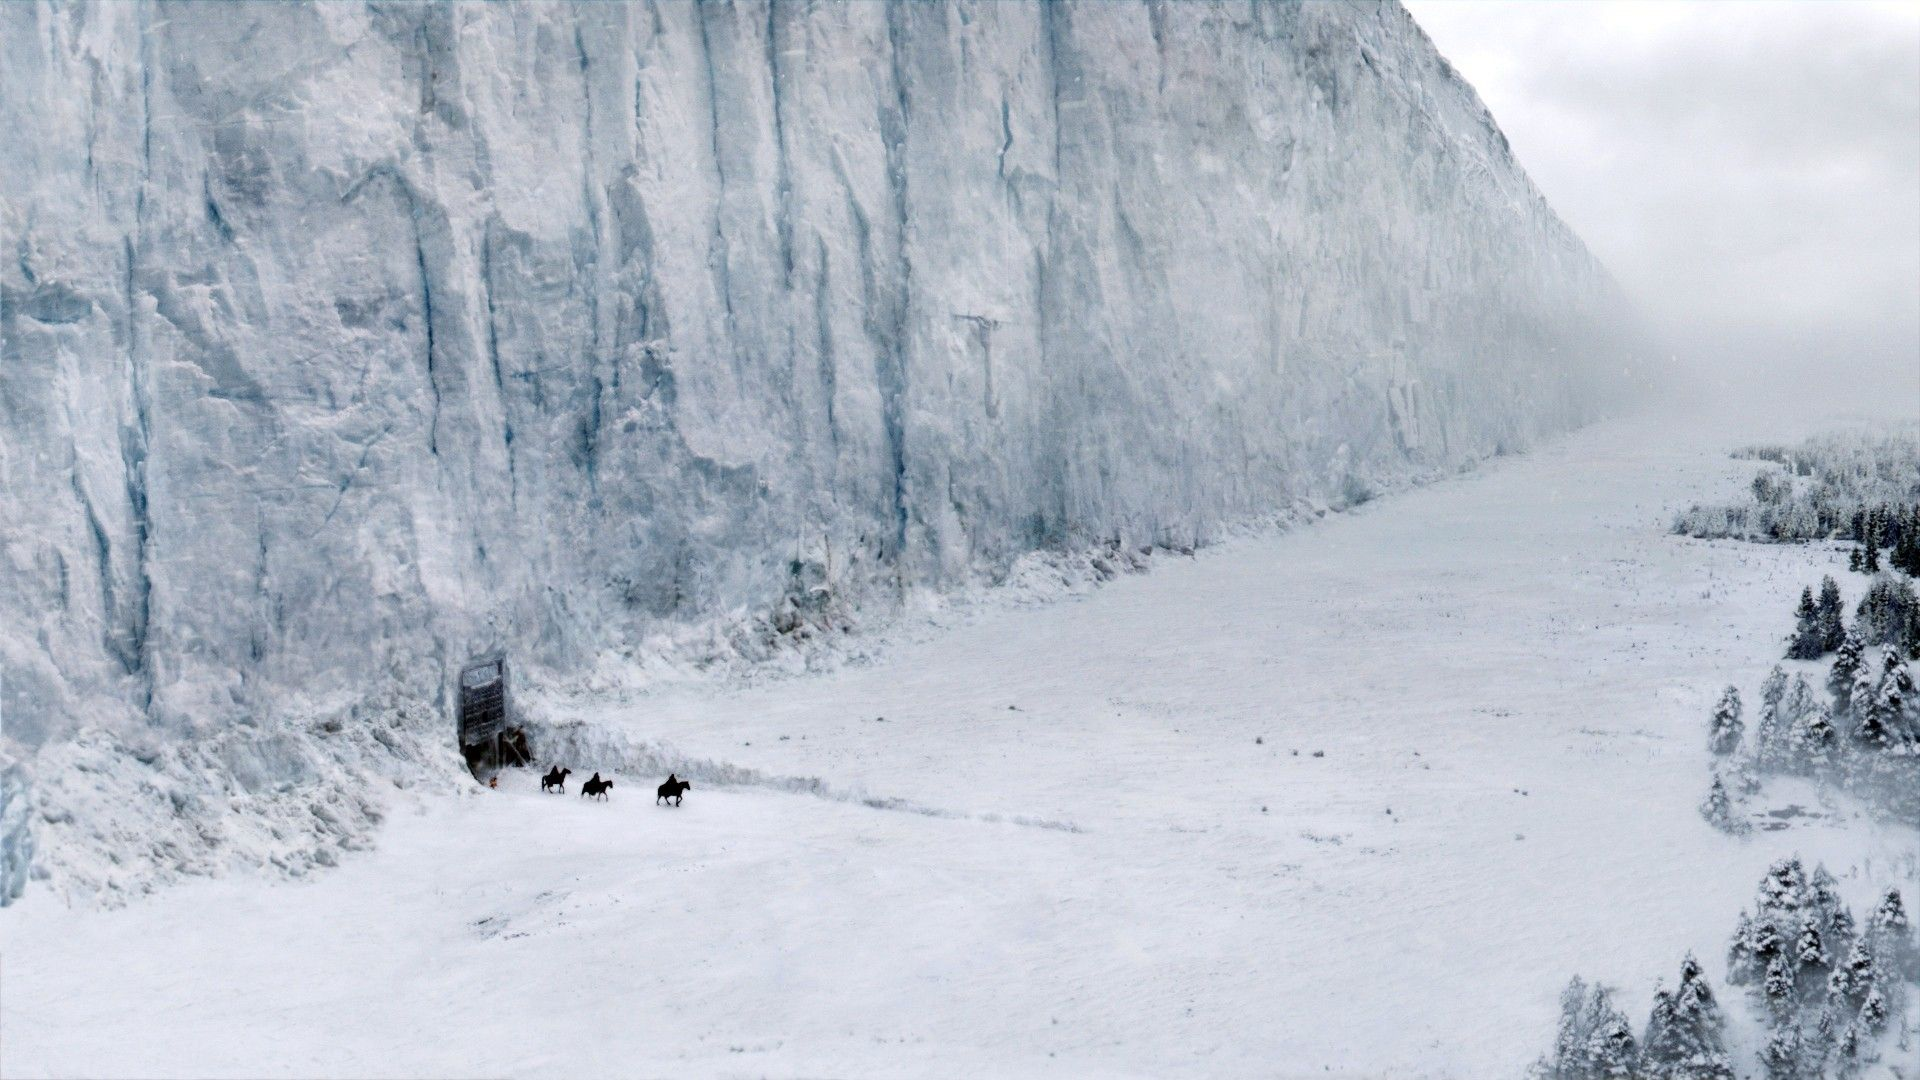 Game of Thrones landscape snow wall